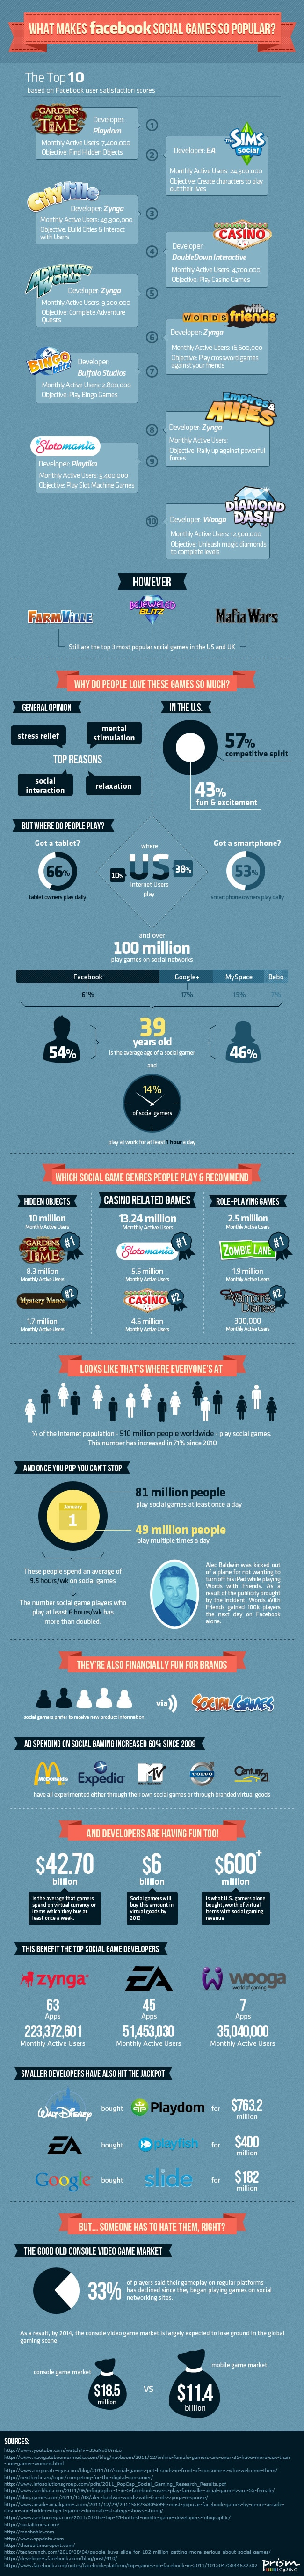 Top Social Games & Why They Are So Popular [Infographic]